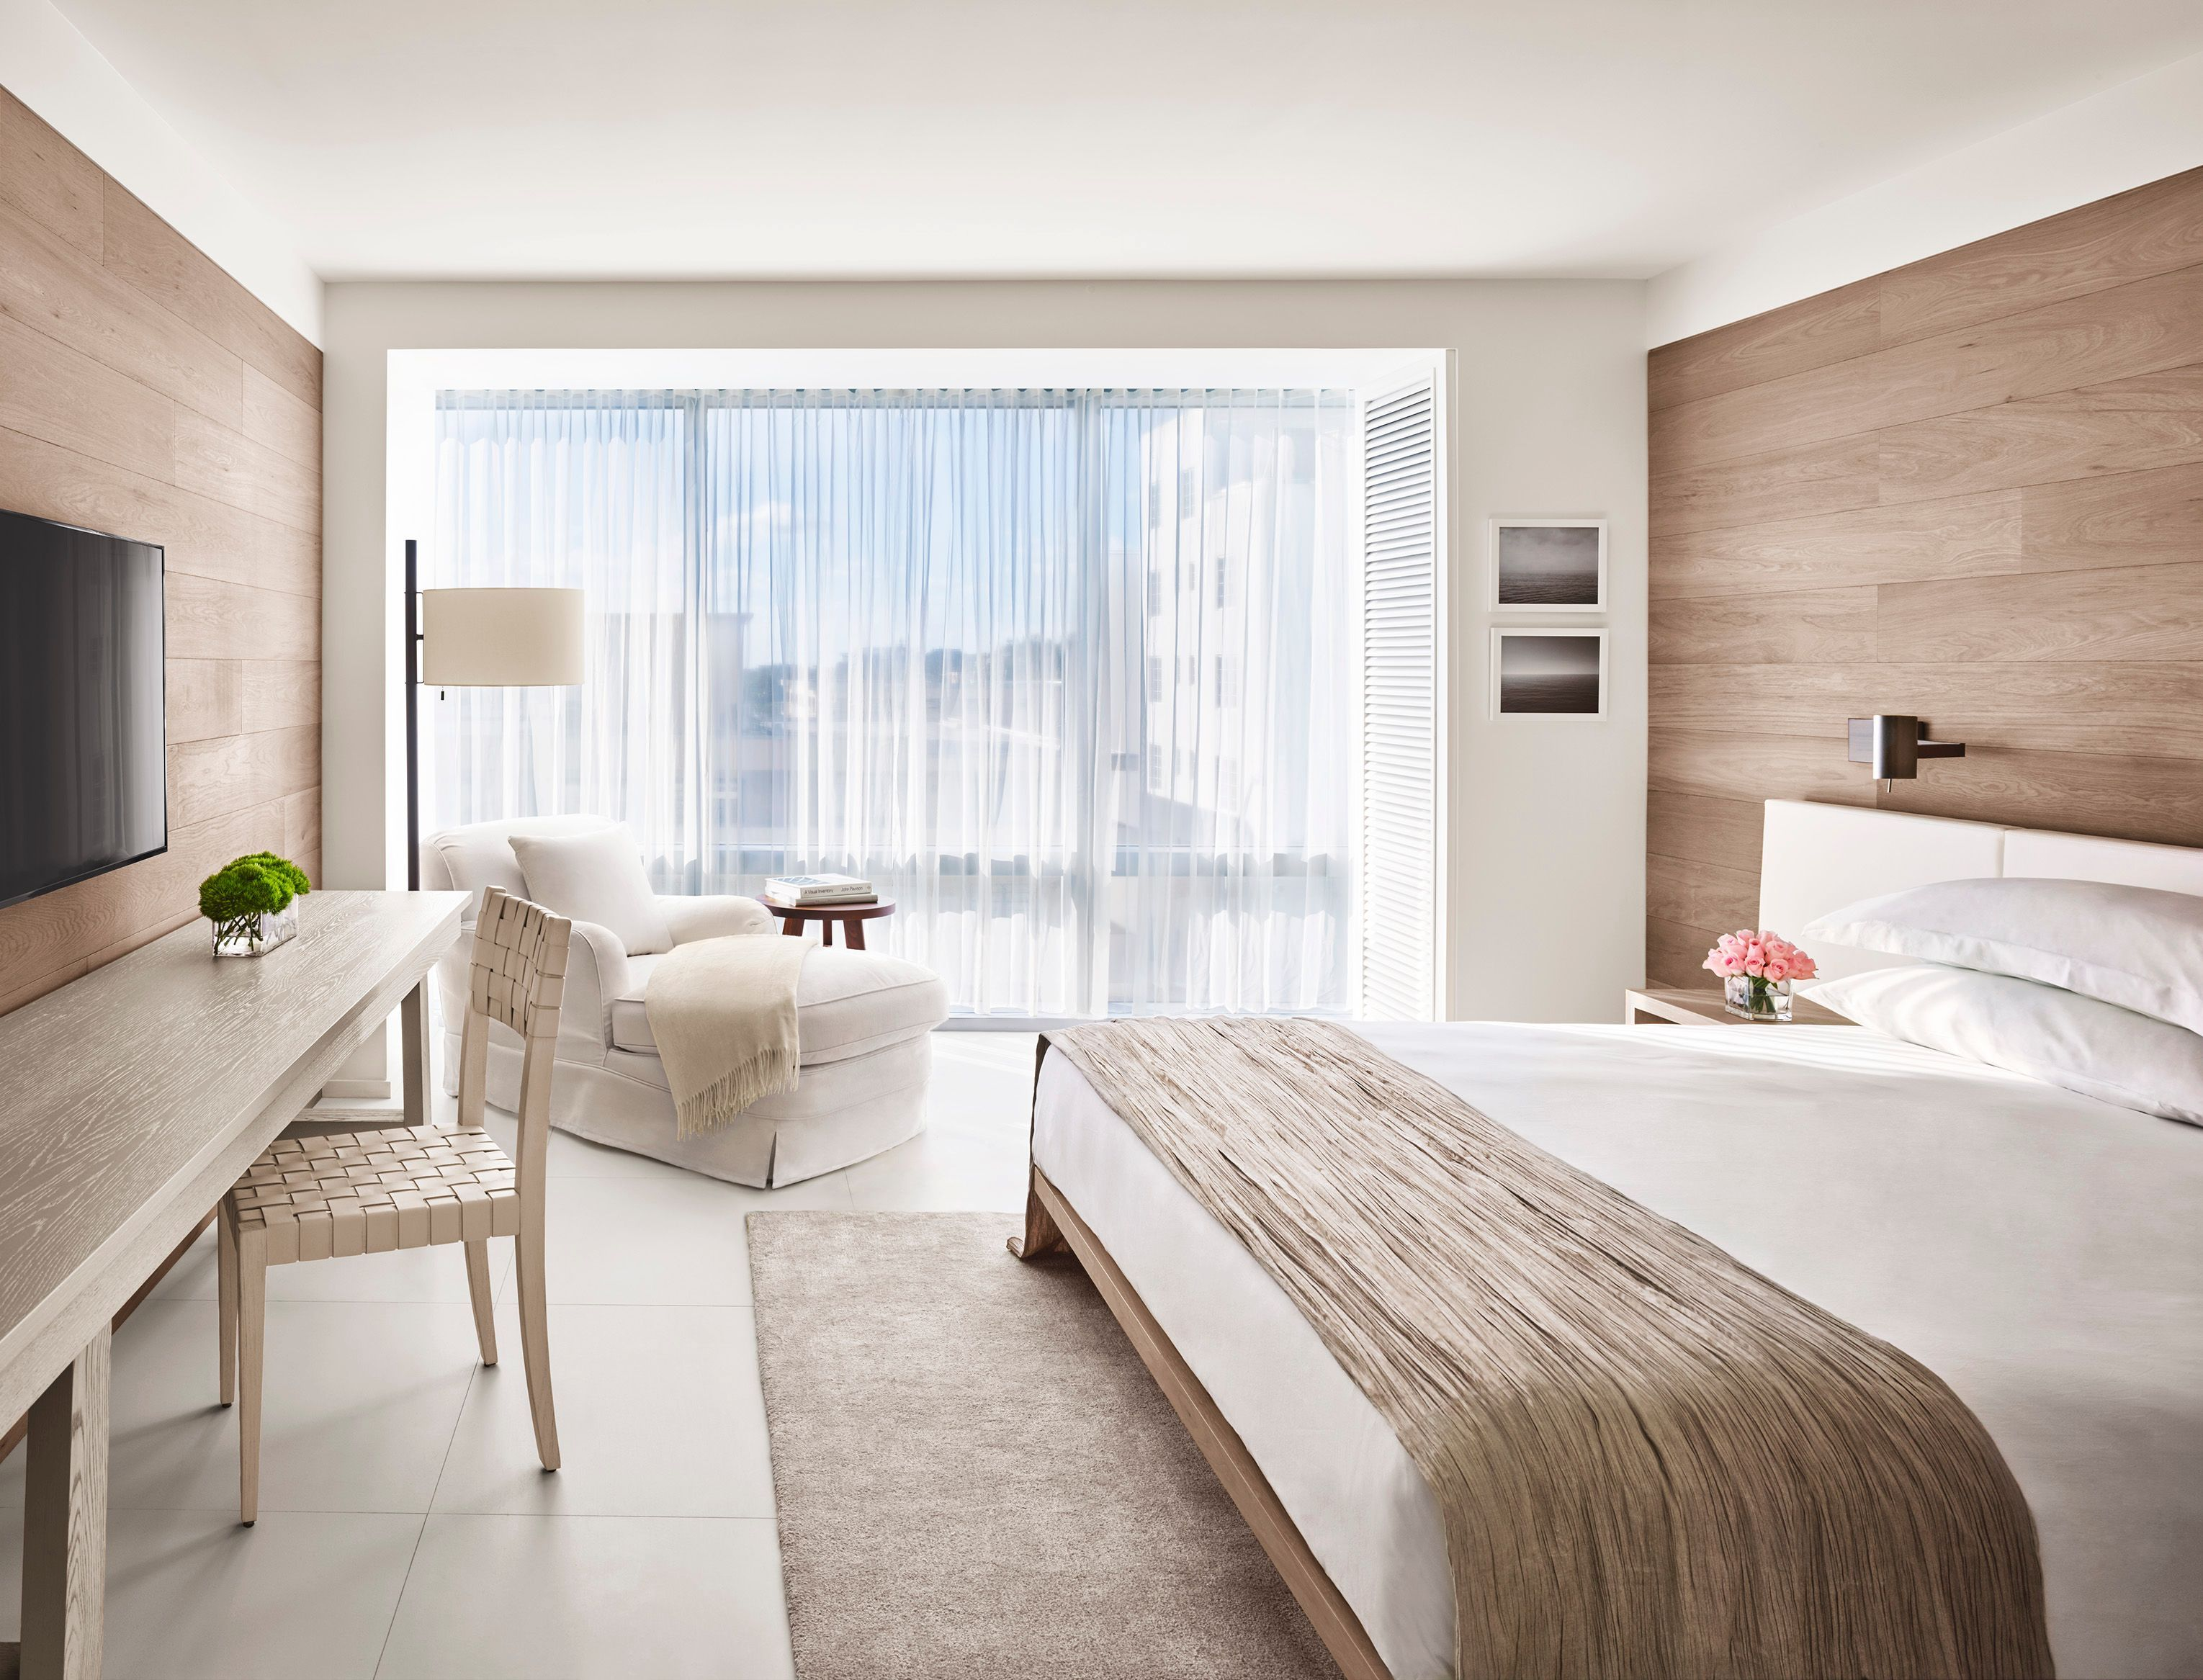 Yabu pushelberg the miami beach edition bedroom luxury for Boutique hotel vacations